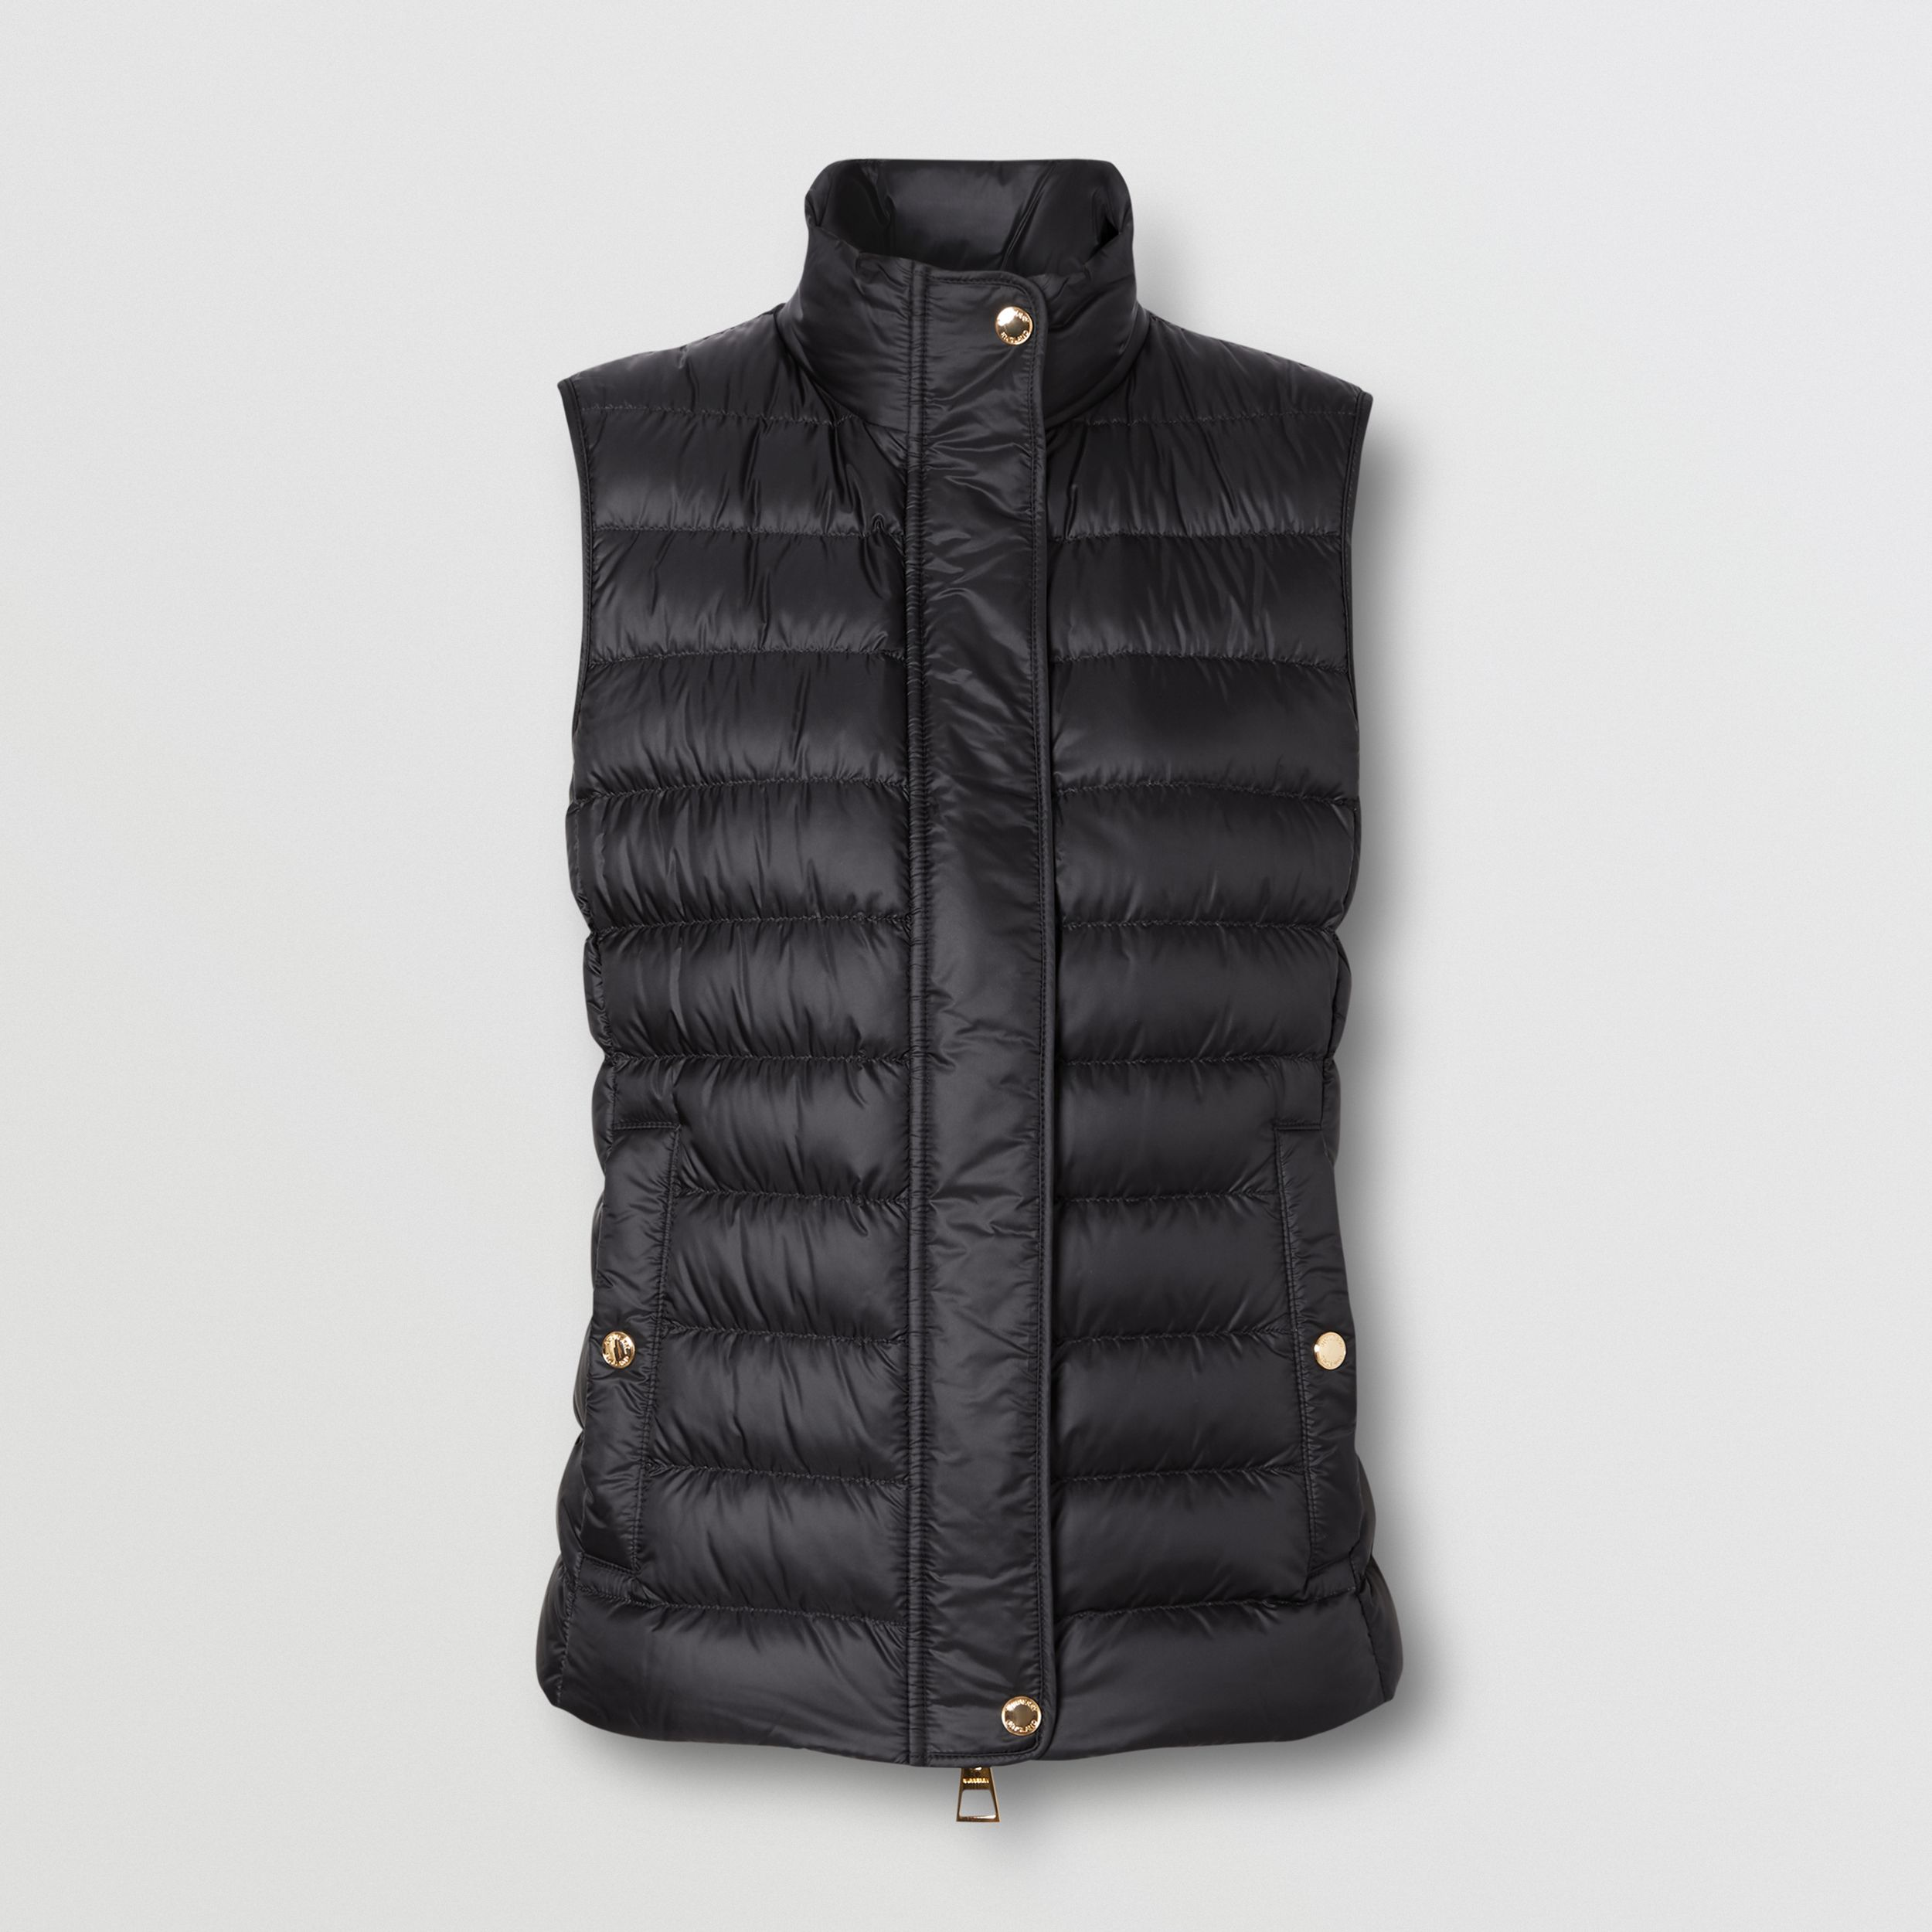 Monogram Print-lined Lightweight Puffer Gilet in Black - Women | Burberry - 4